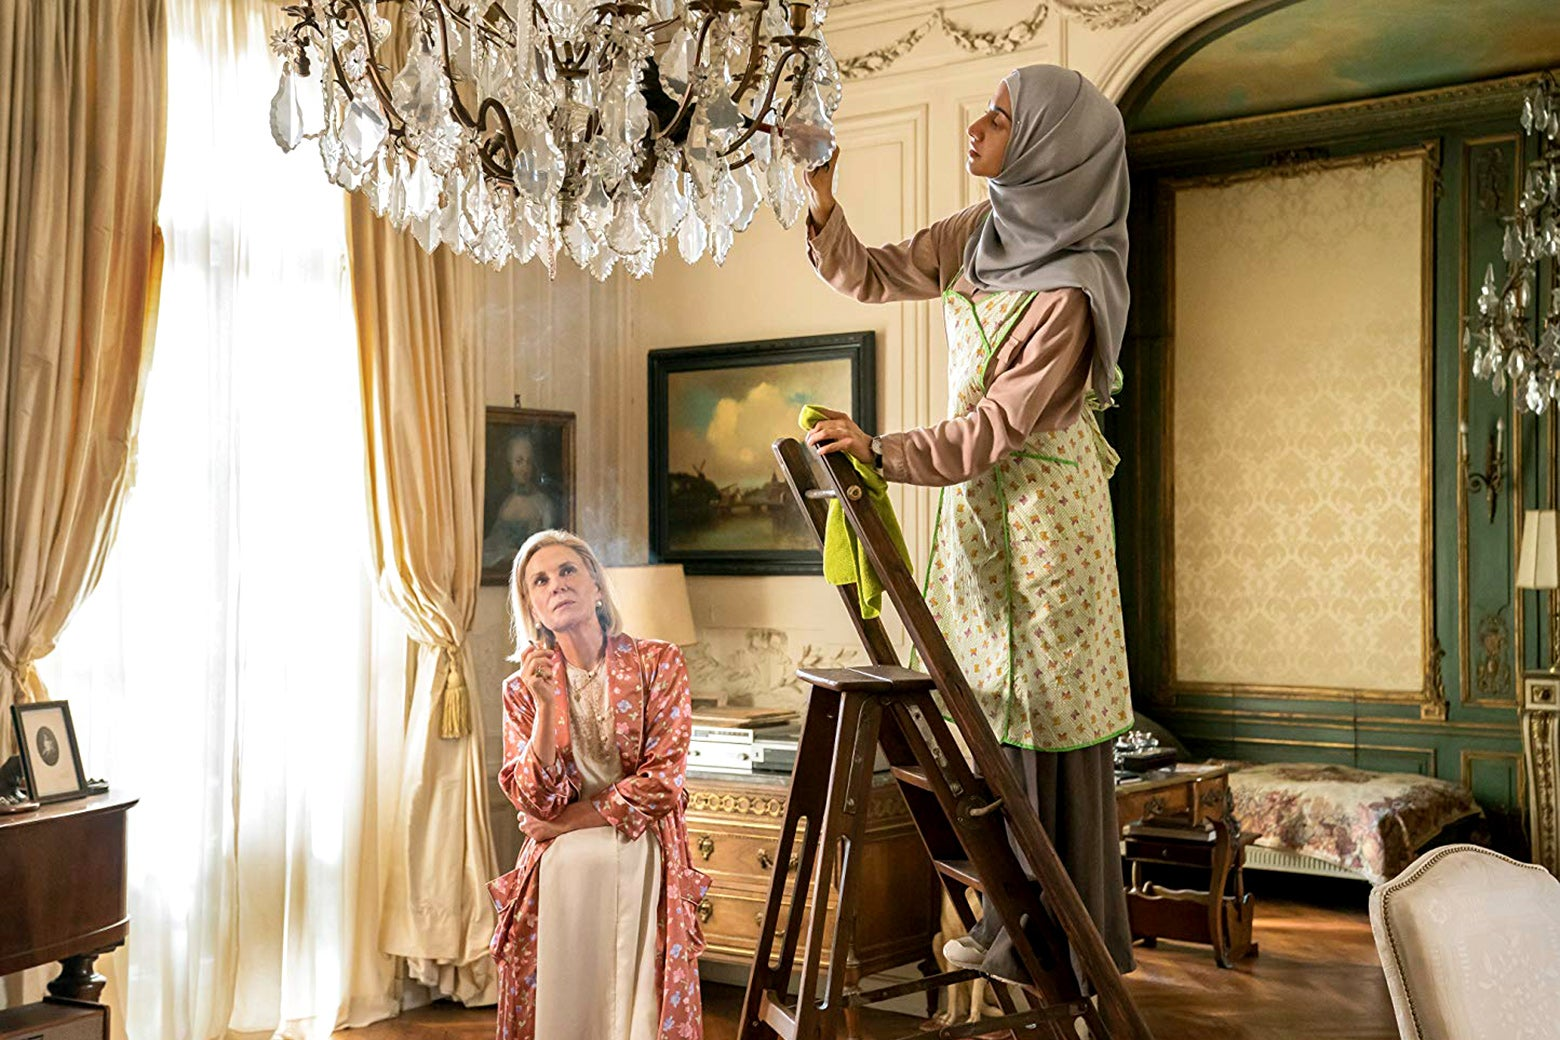 In a scene from The Romanoffs, an elderly woman sits in a richly decorated room and looks on as a younger woman in a hijab stands on a ladder, cleaning the chandelier.